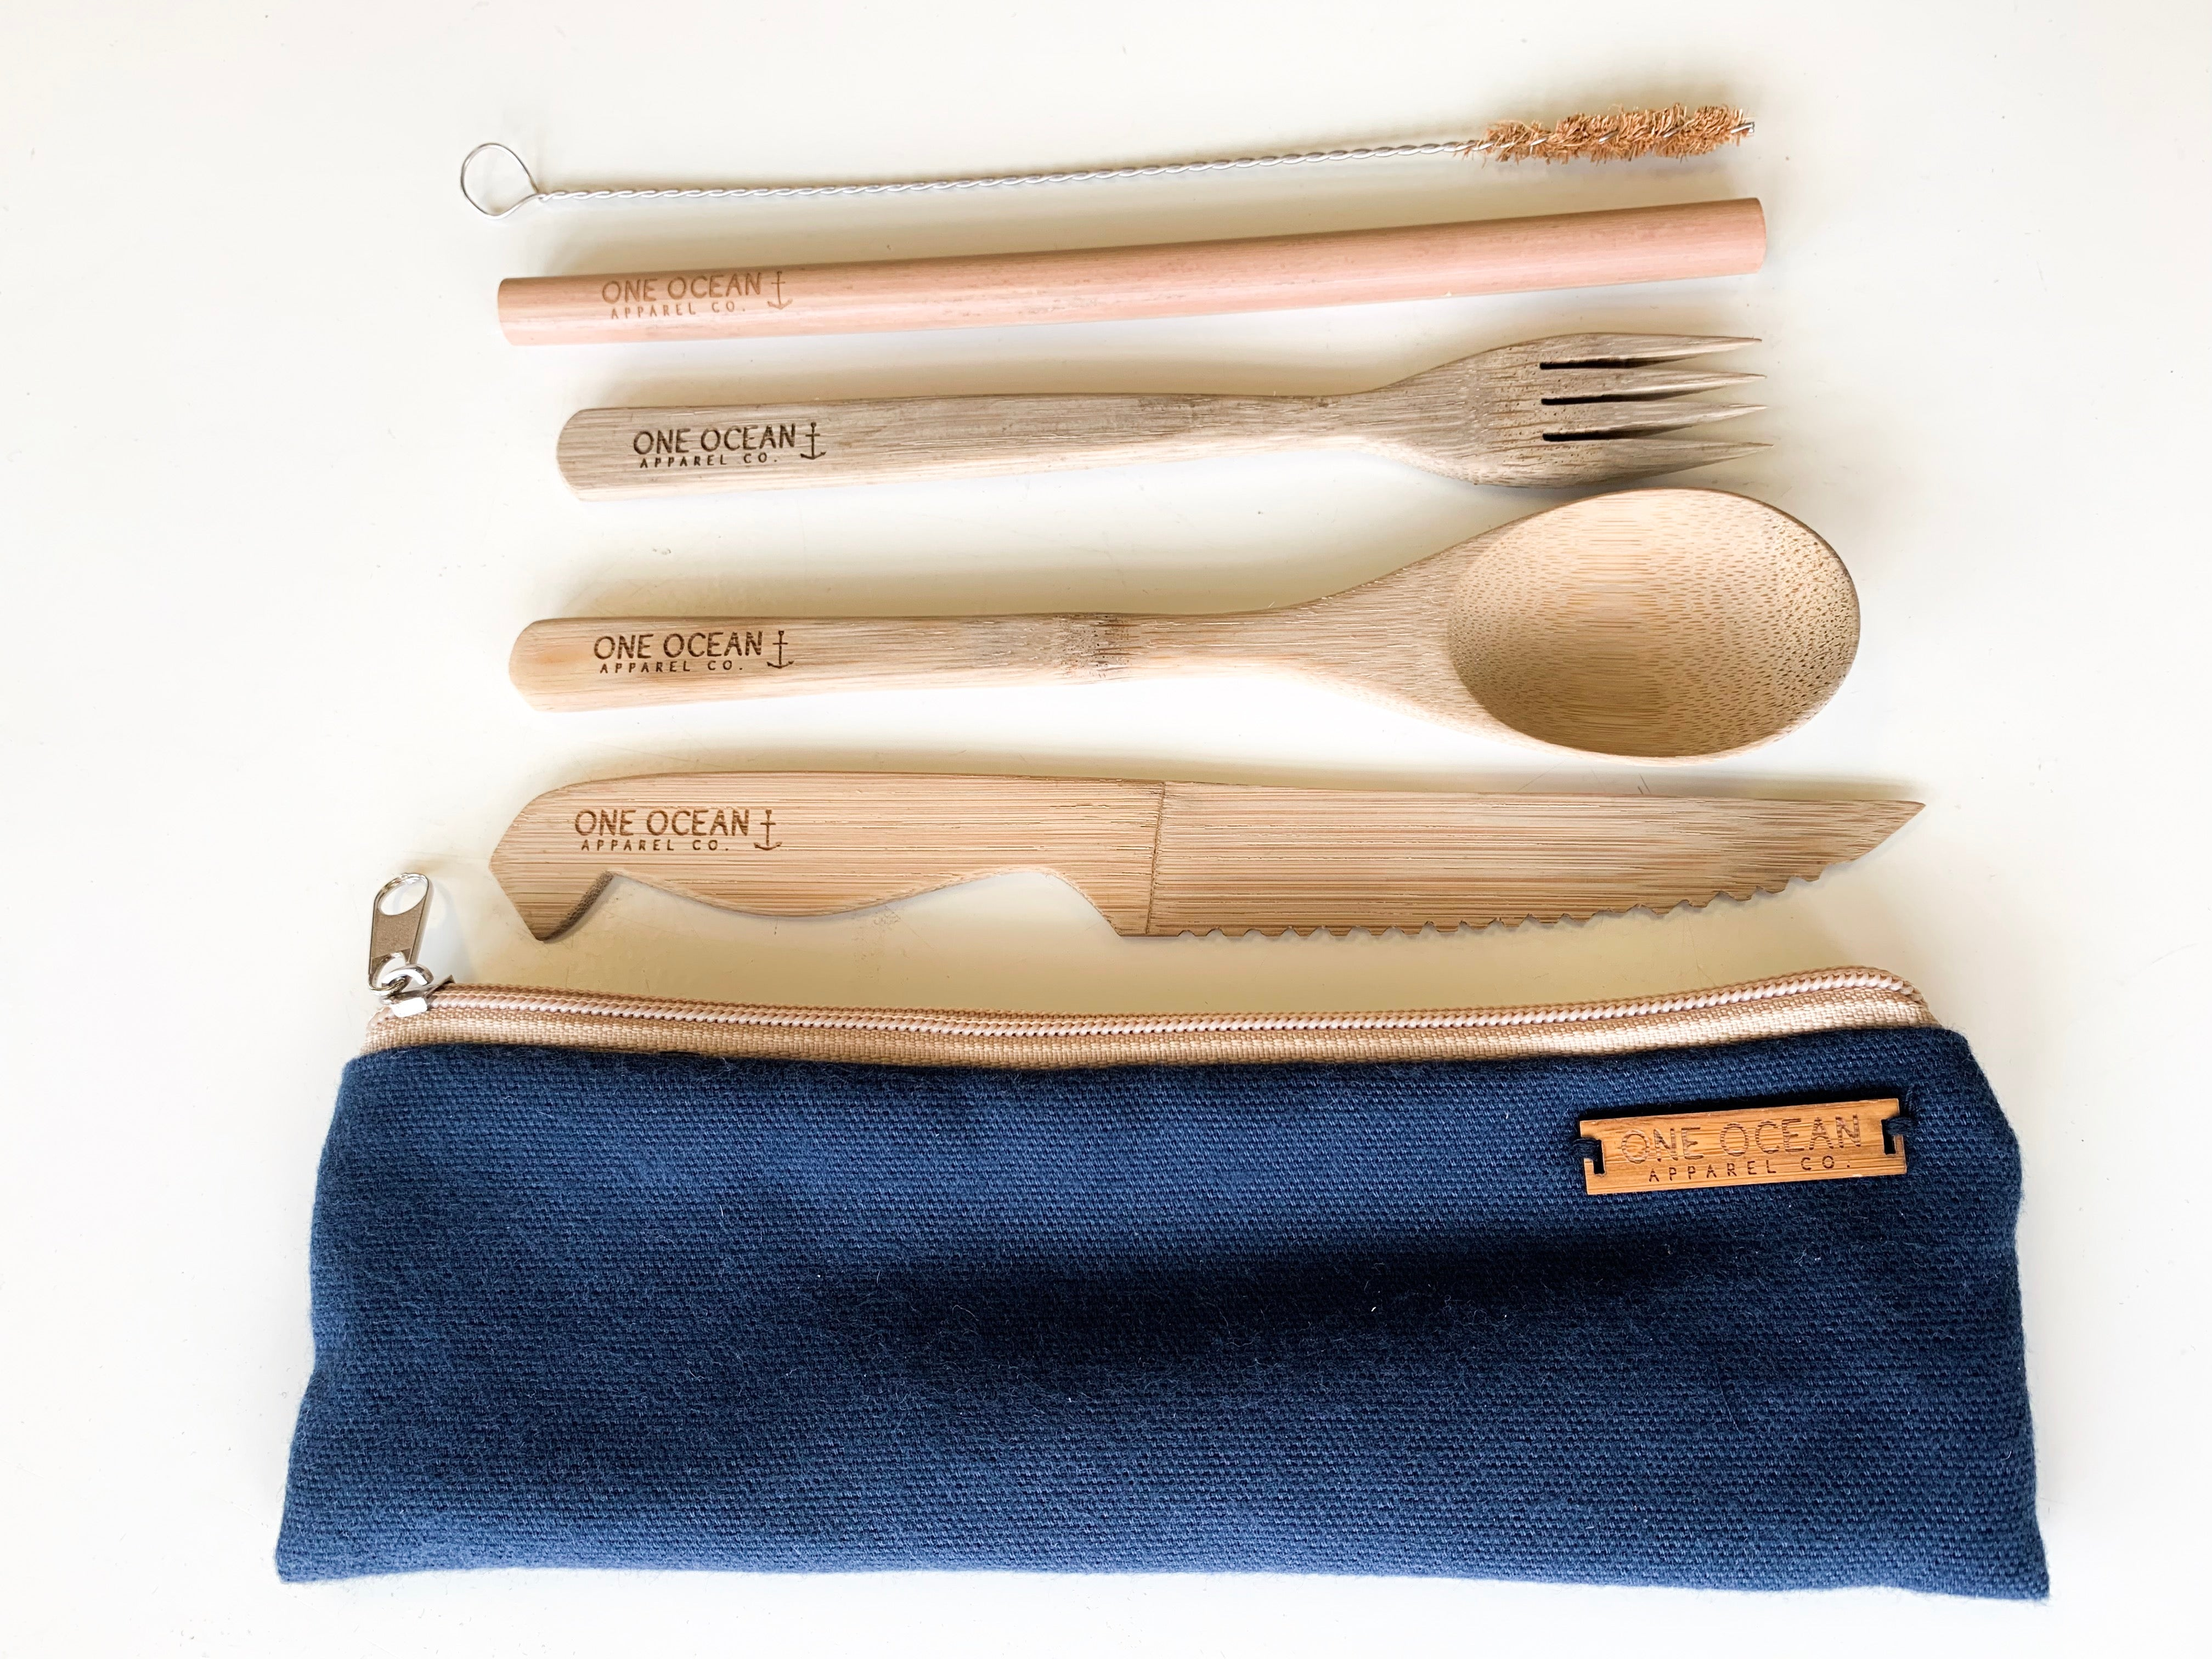 One Ocean Bamboo Straw and Utensil Set